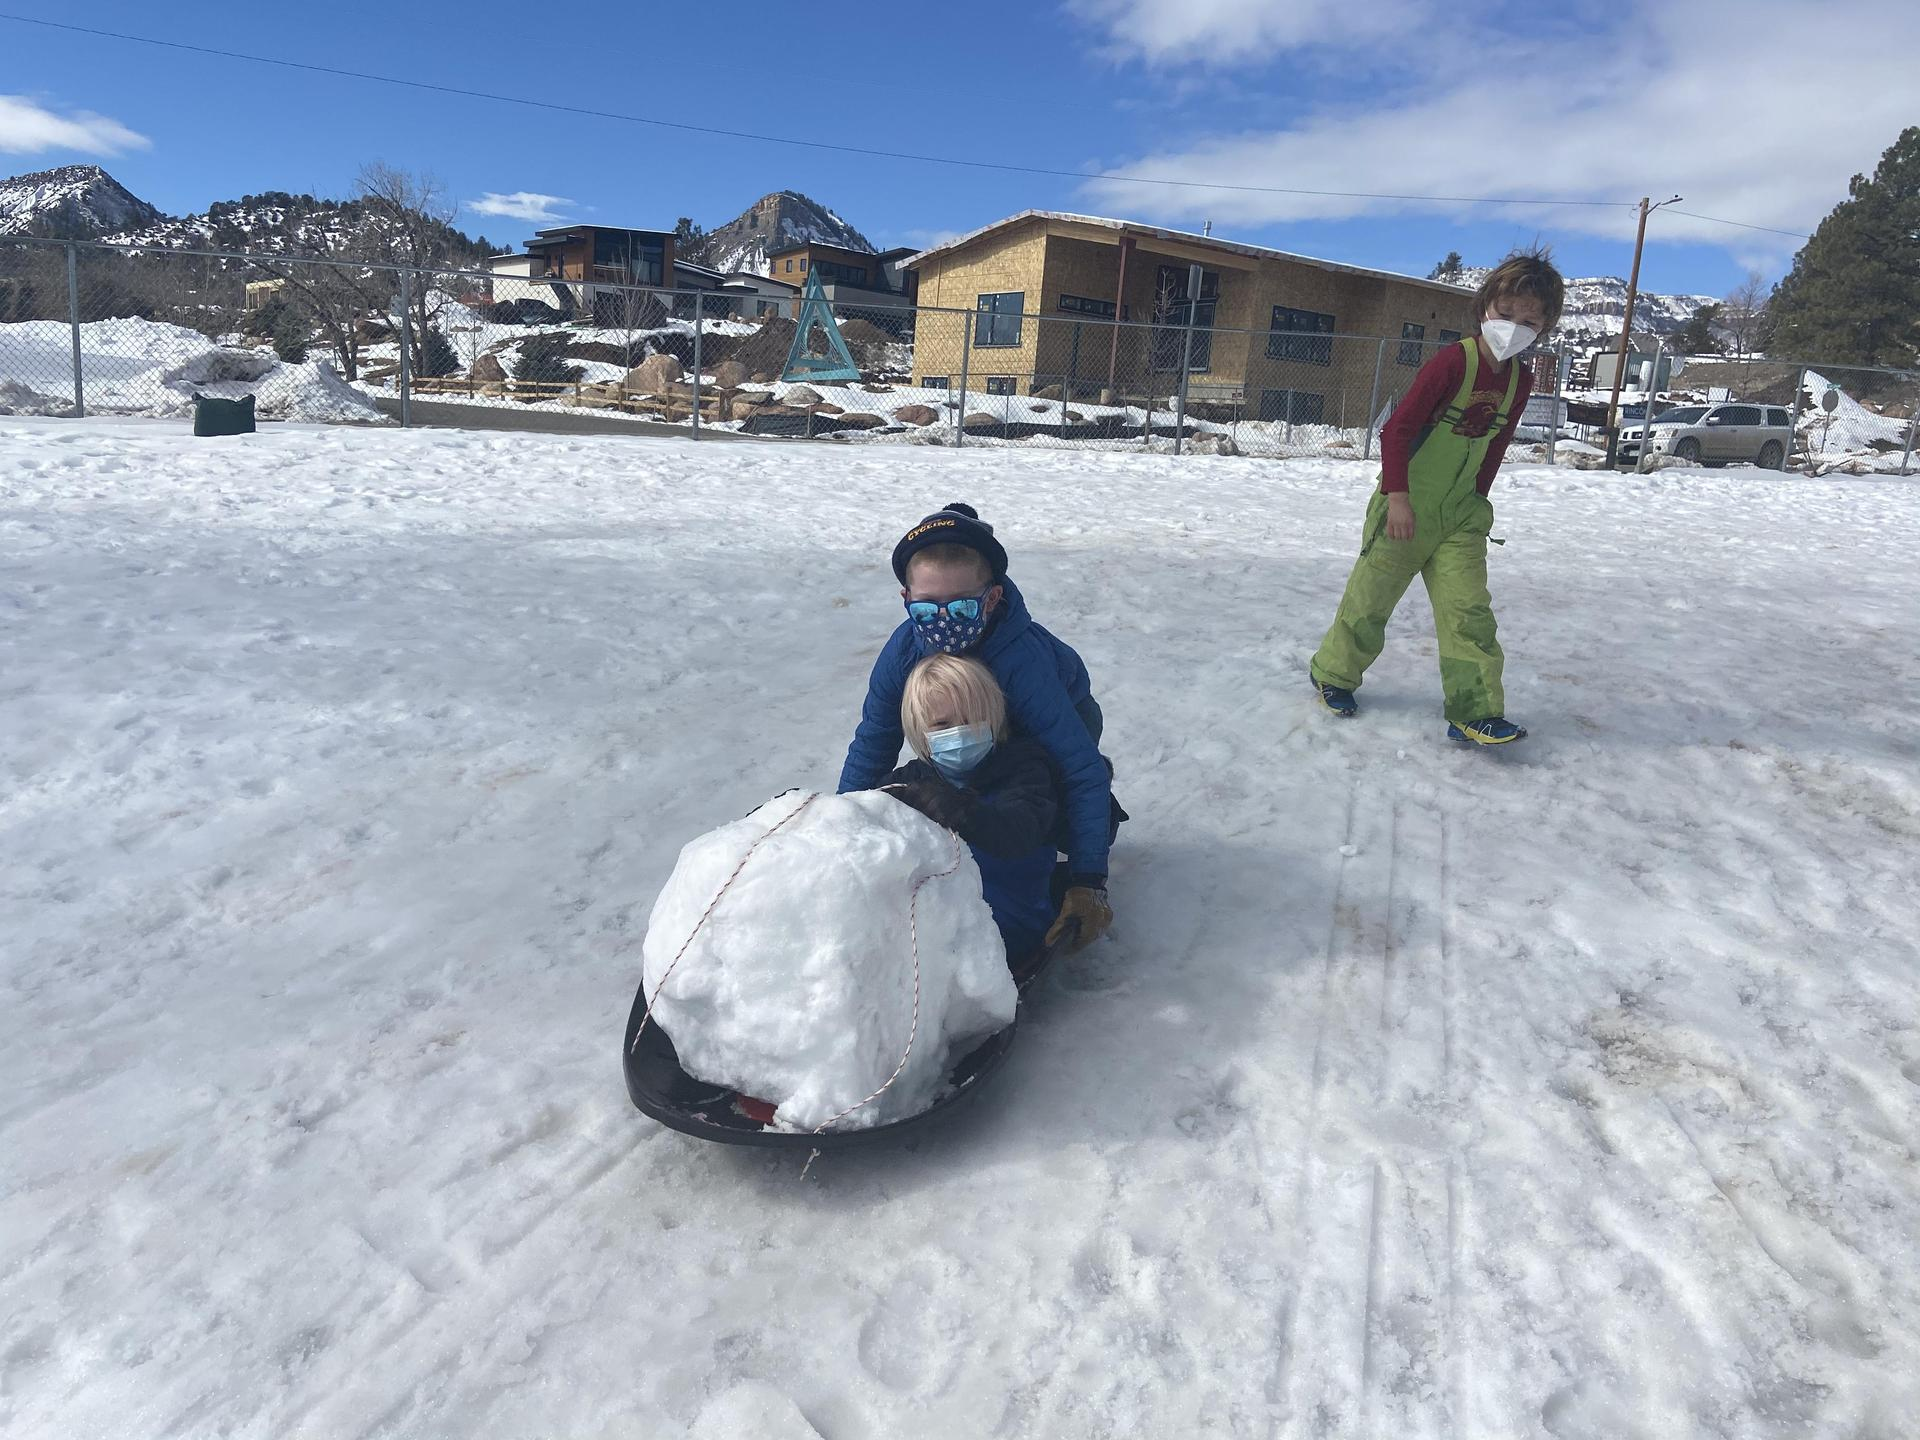 snow fun with a sled